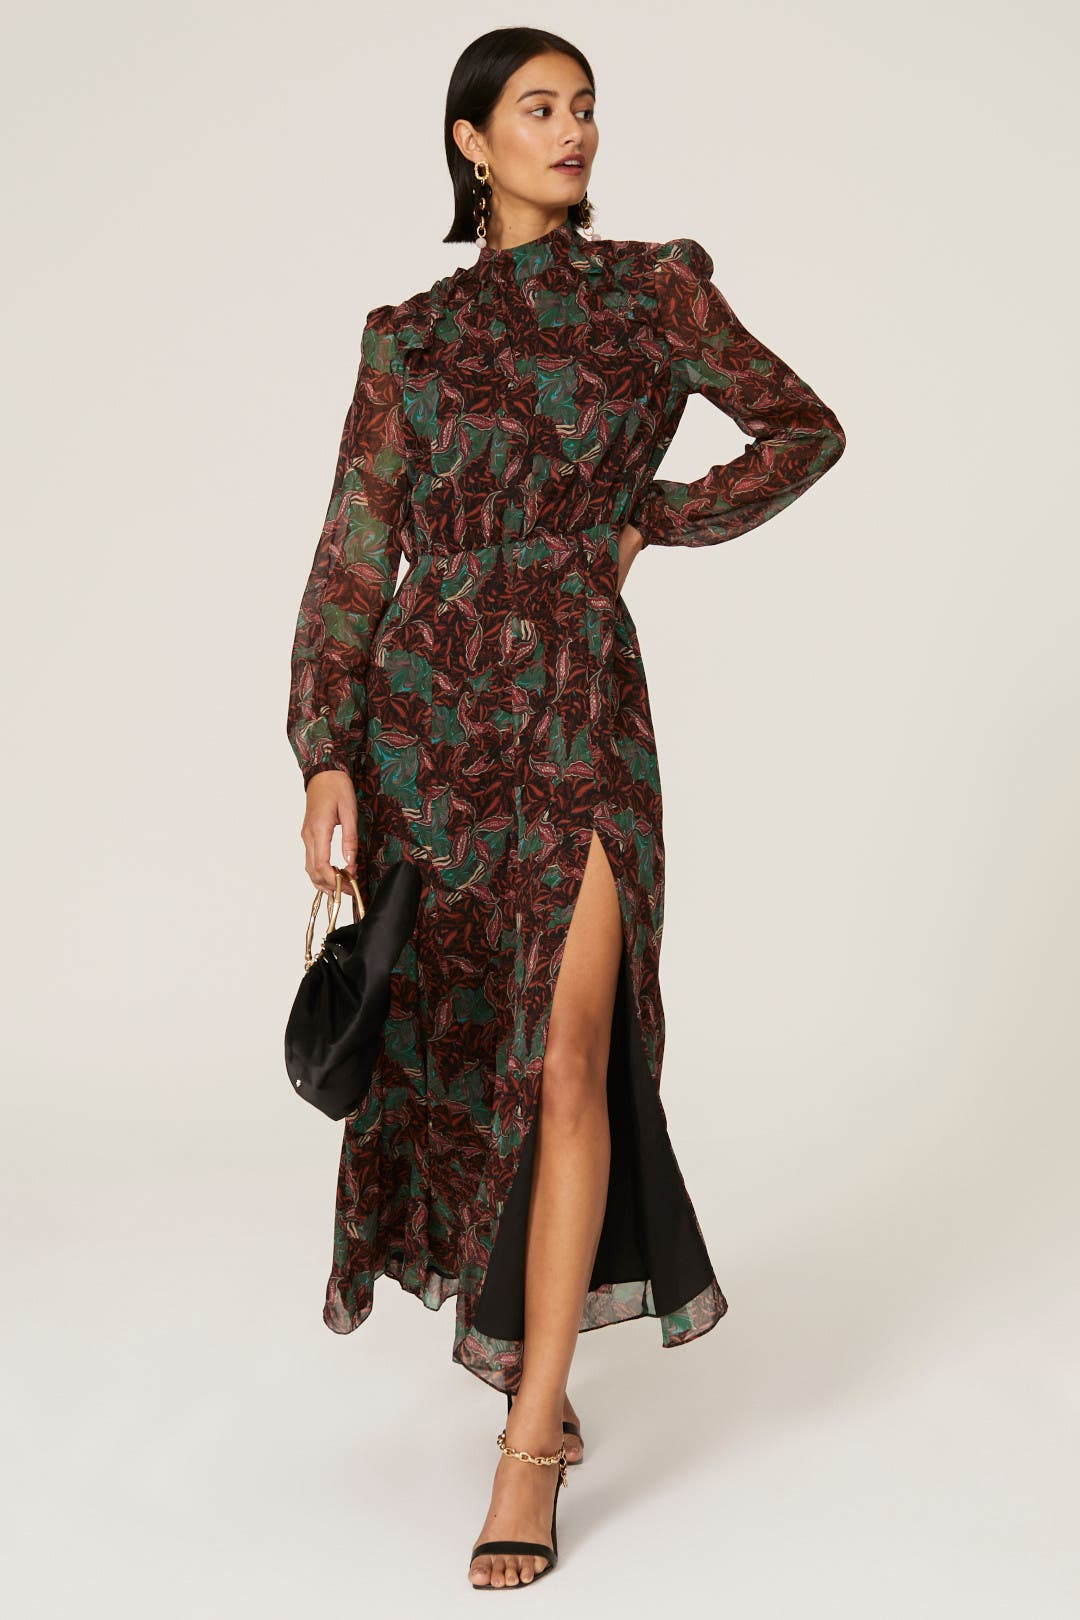 20 Beautiful Wedding Guest Dresses for This Winter